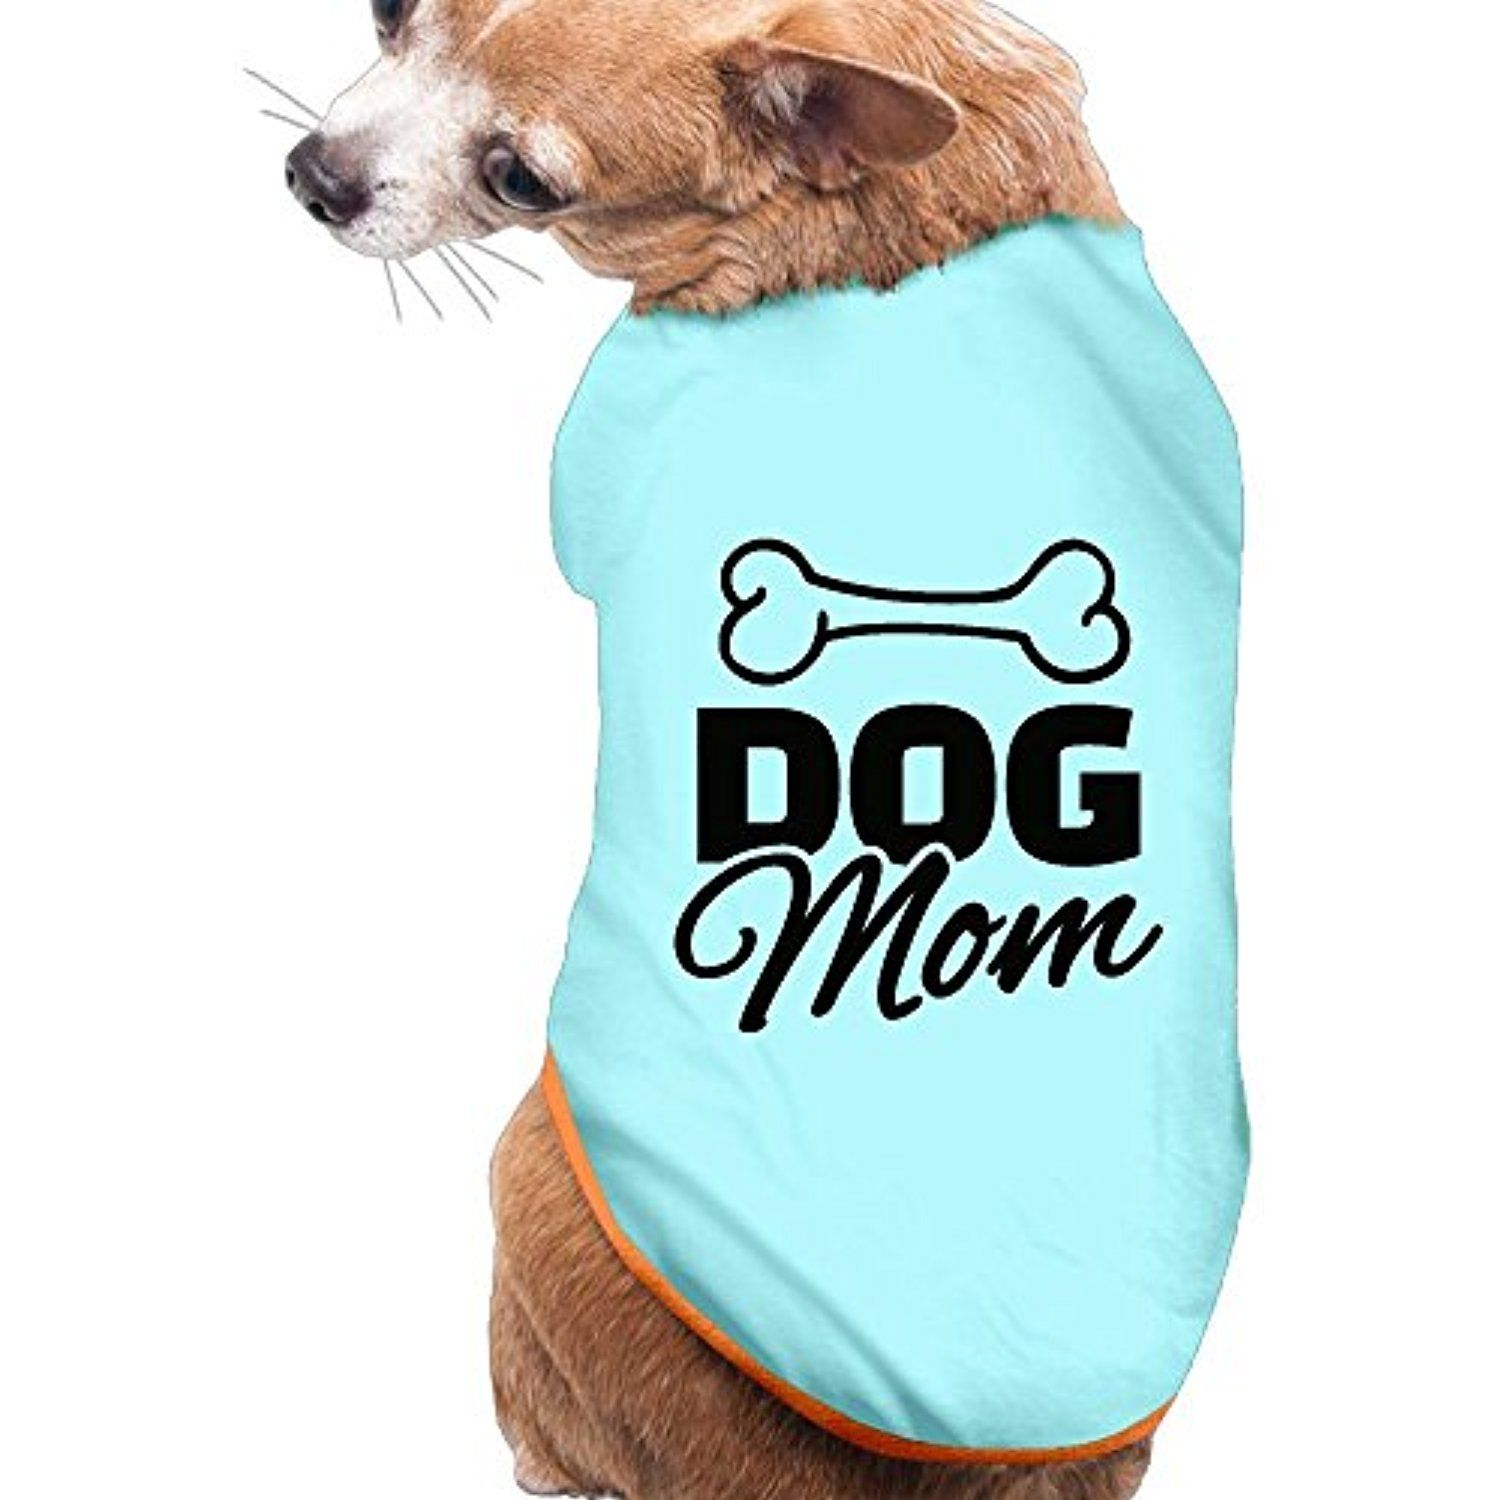 61d4f433deb2 Hot Sale ! FASHION N WORLD Dog Mom Printed Funny Letters Apparel Vest  Ployster Puppy Clothes Christmas Gifts For Dogs Small SkyBlue * Be sure to  check out ...